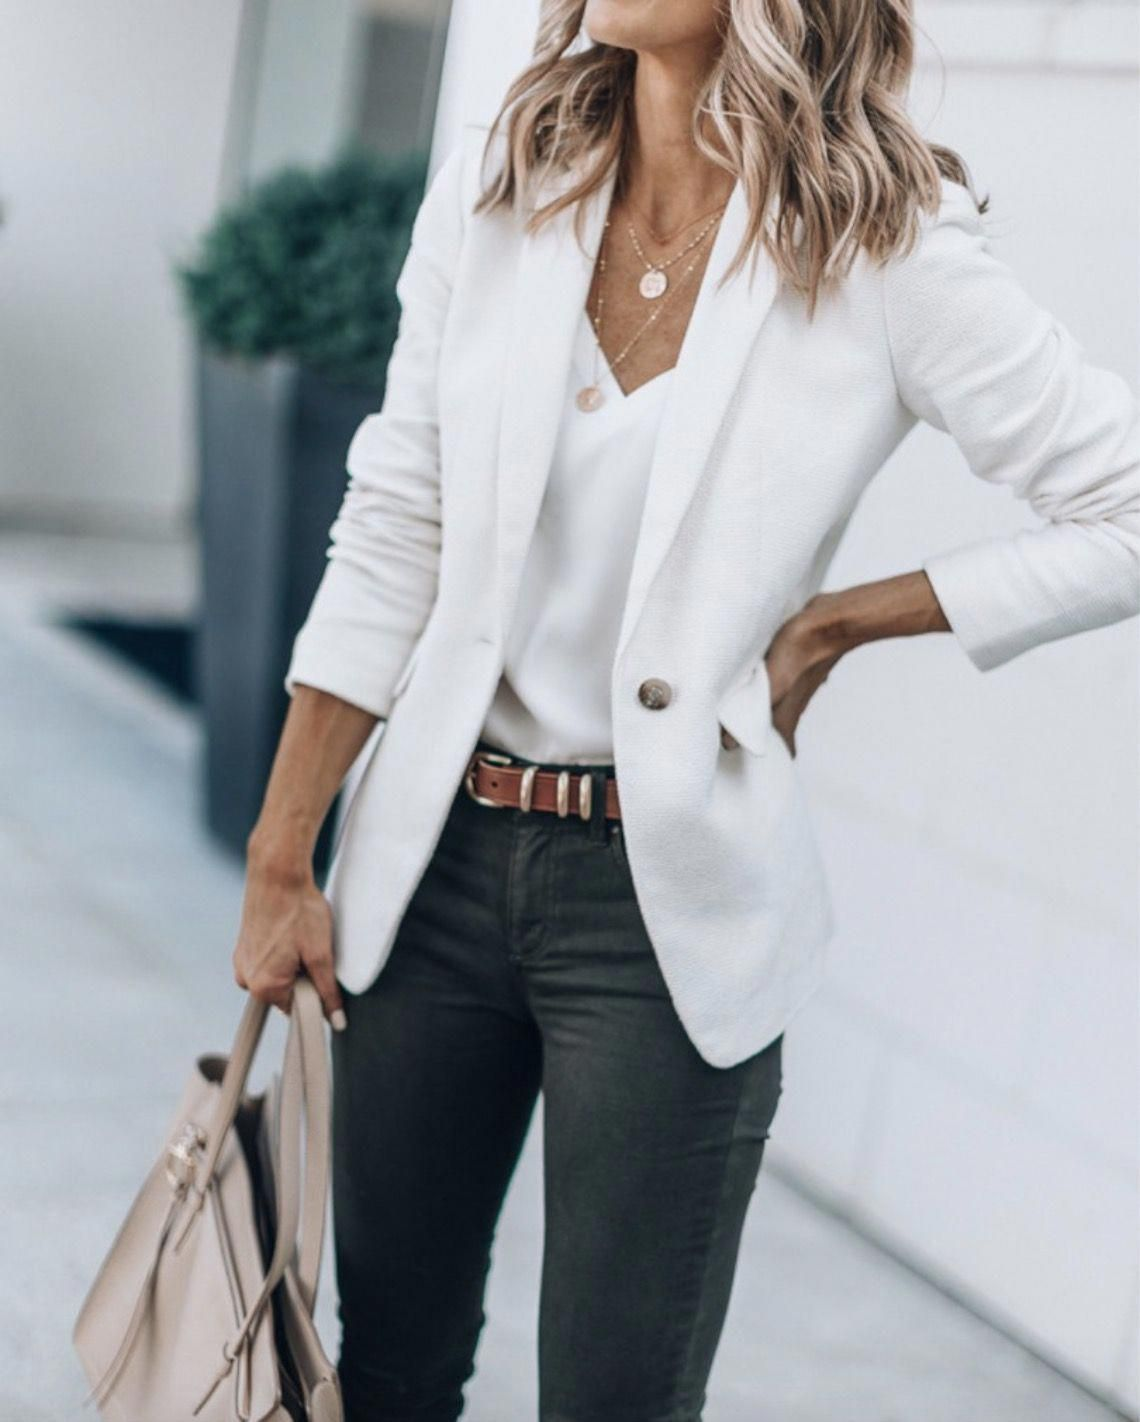 40 Outstanding Casual Outfits To Fall In Love With | The Chic Pursuit